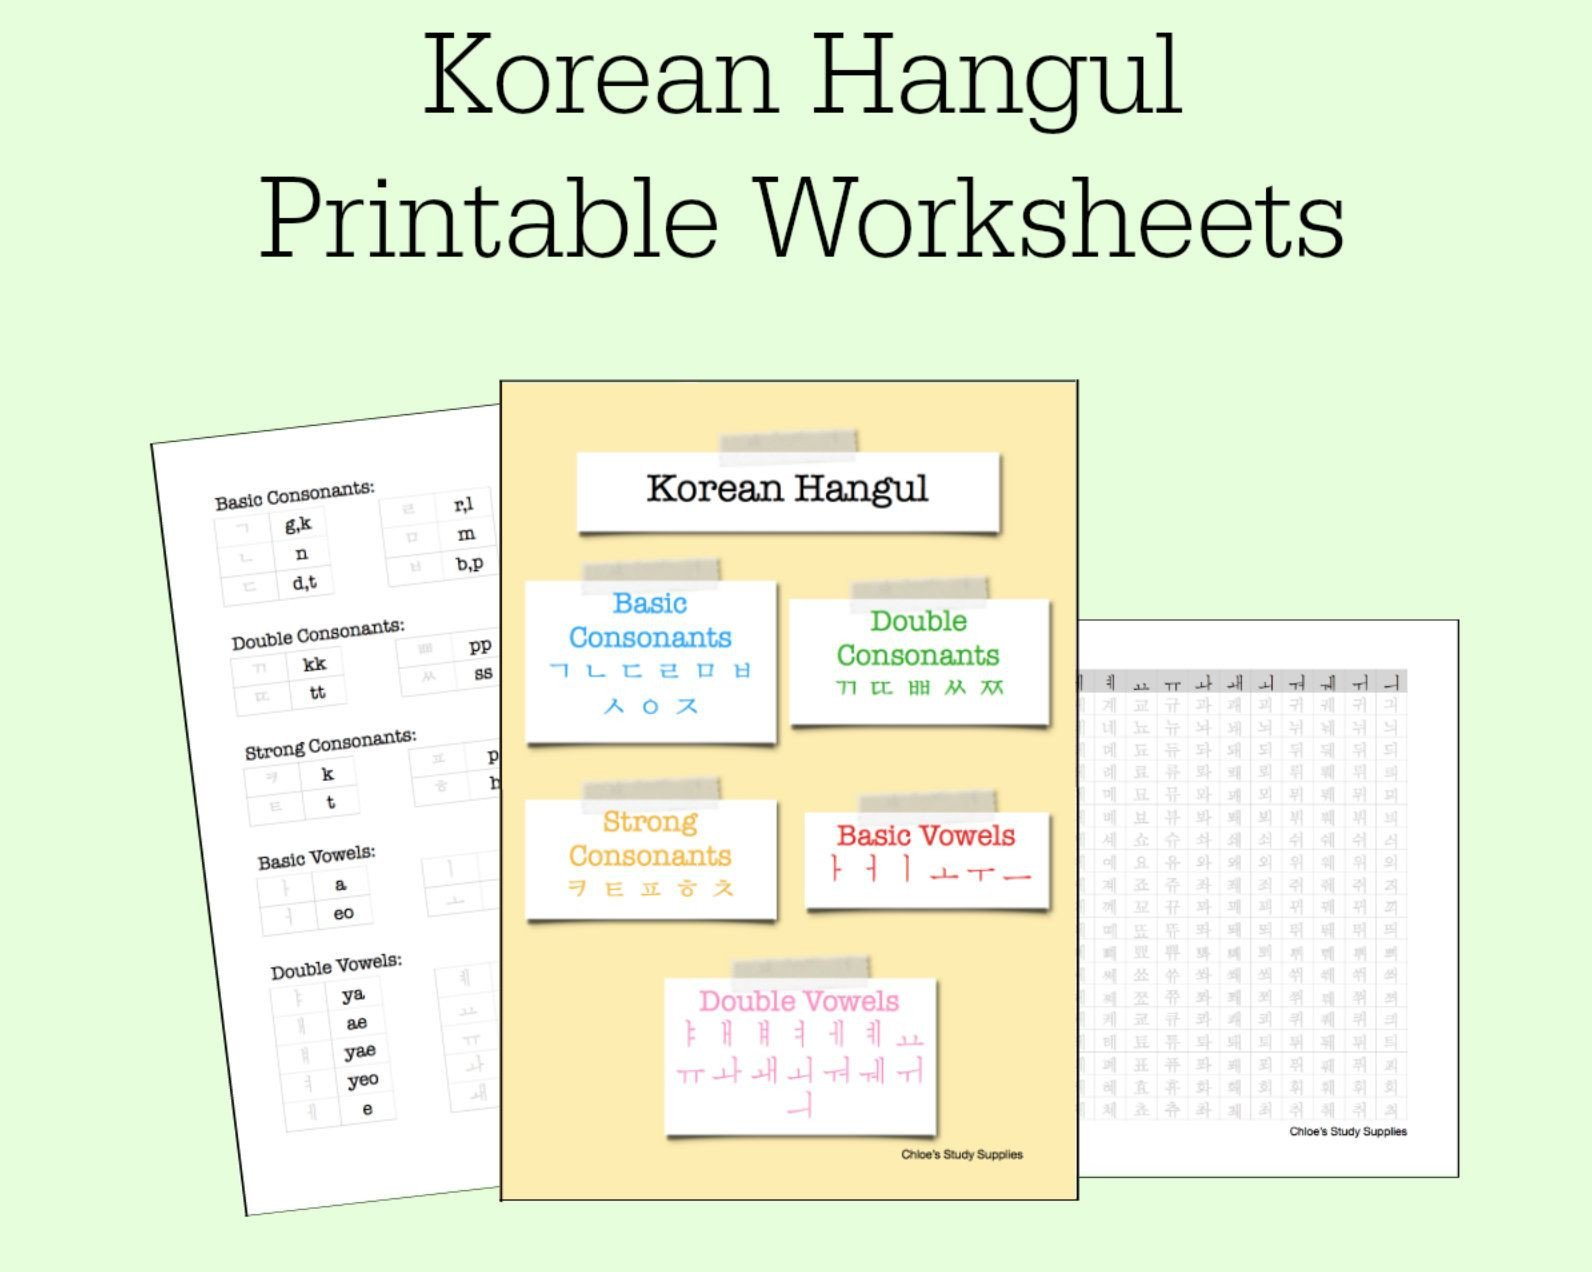 Printable Hangul Worksheets Korean Hangul Practice Printable Worksheets Learn Korean